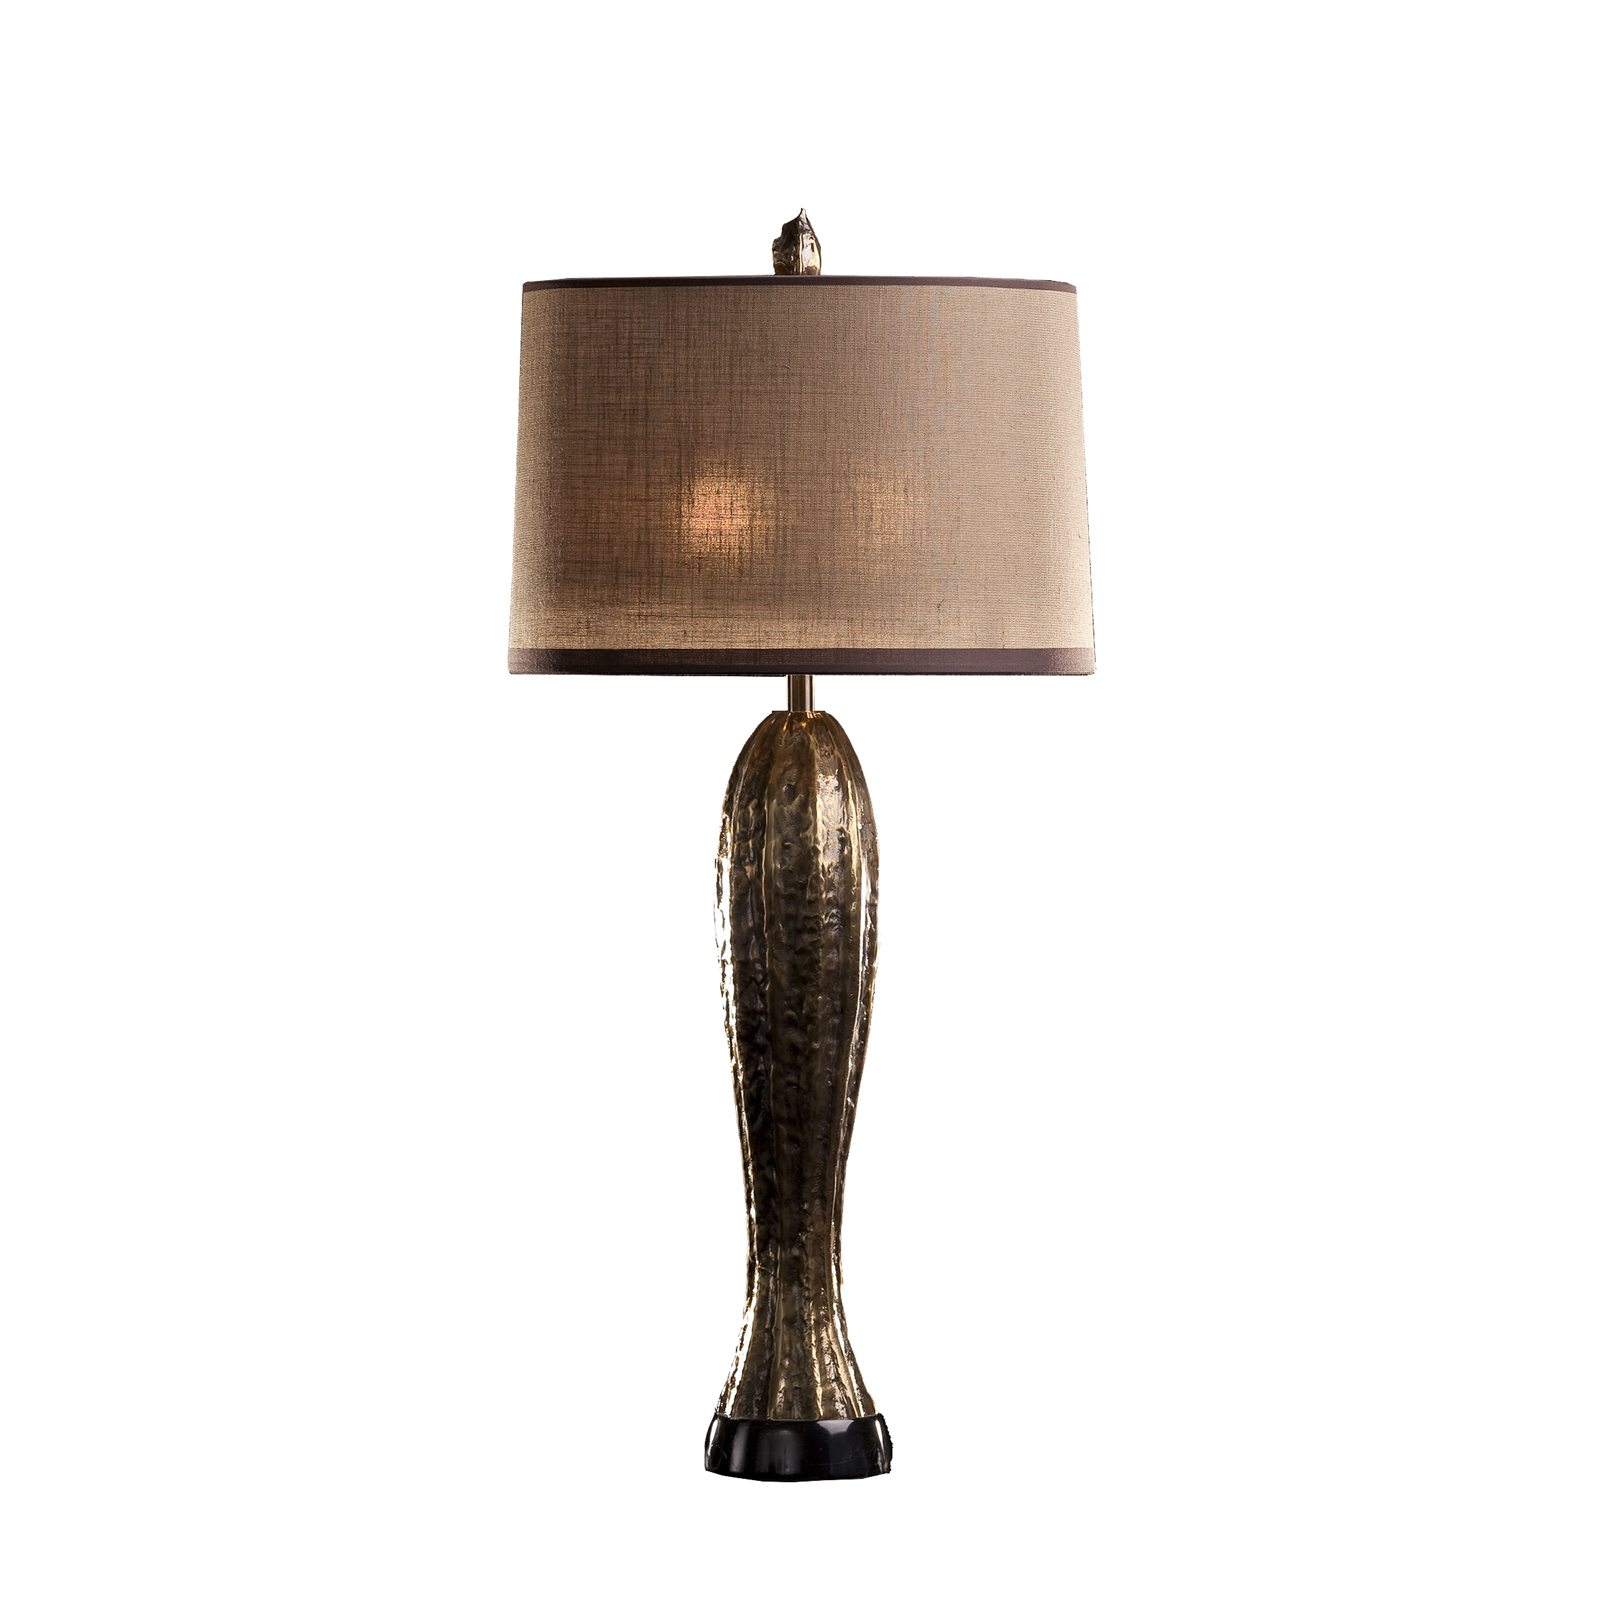 Torino Table Lamp by Bonham & Bonham